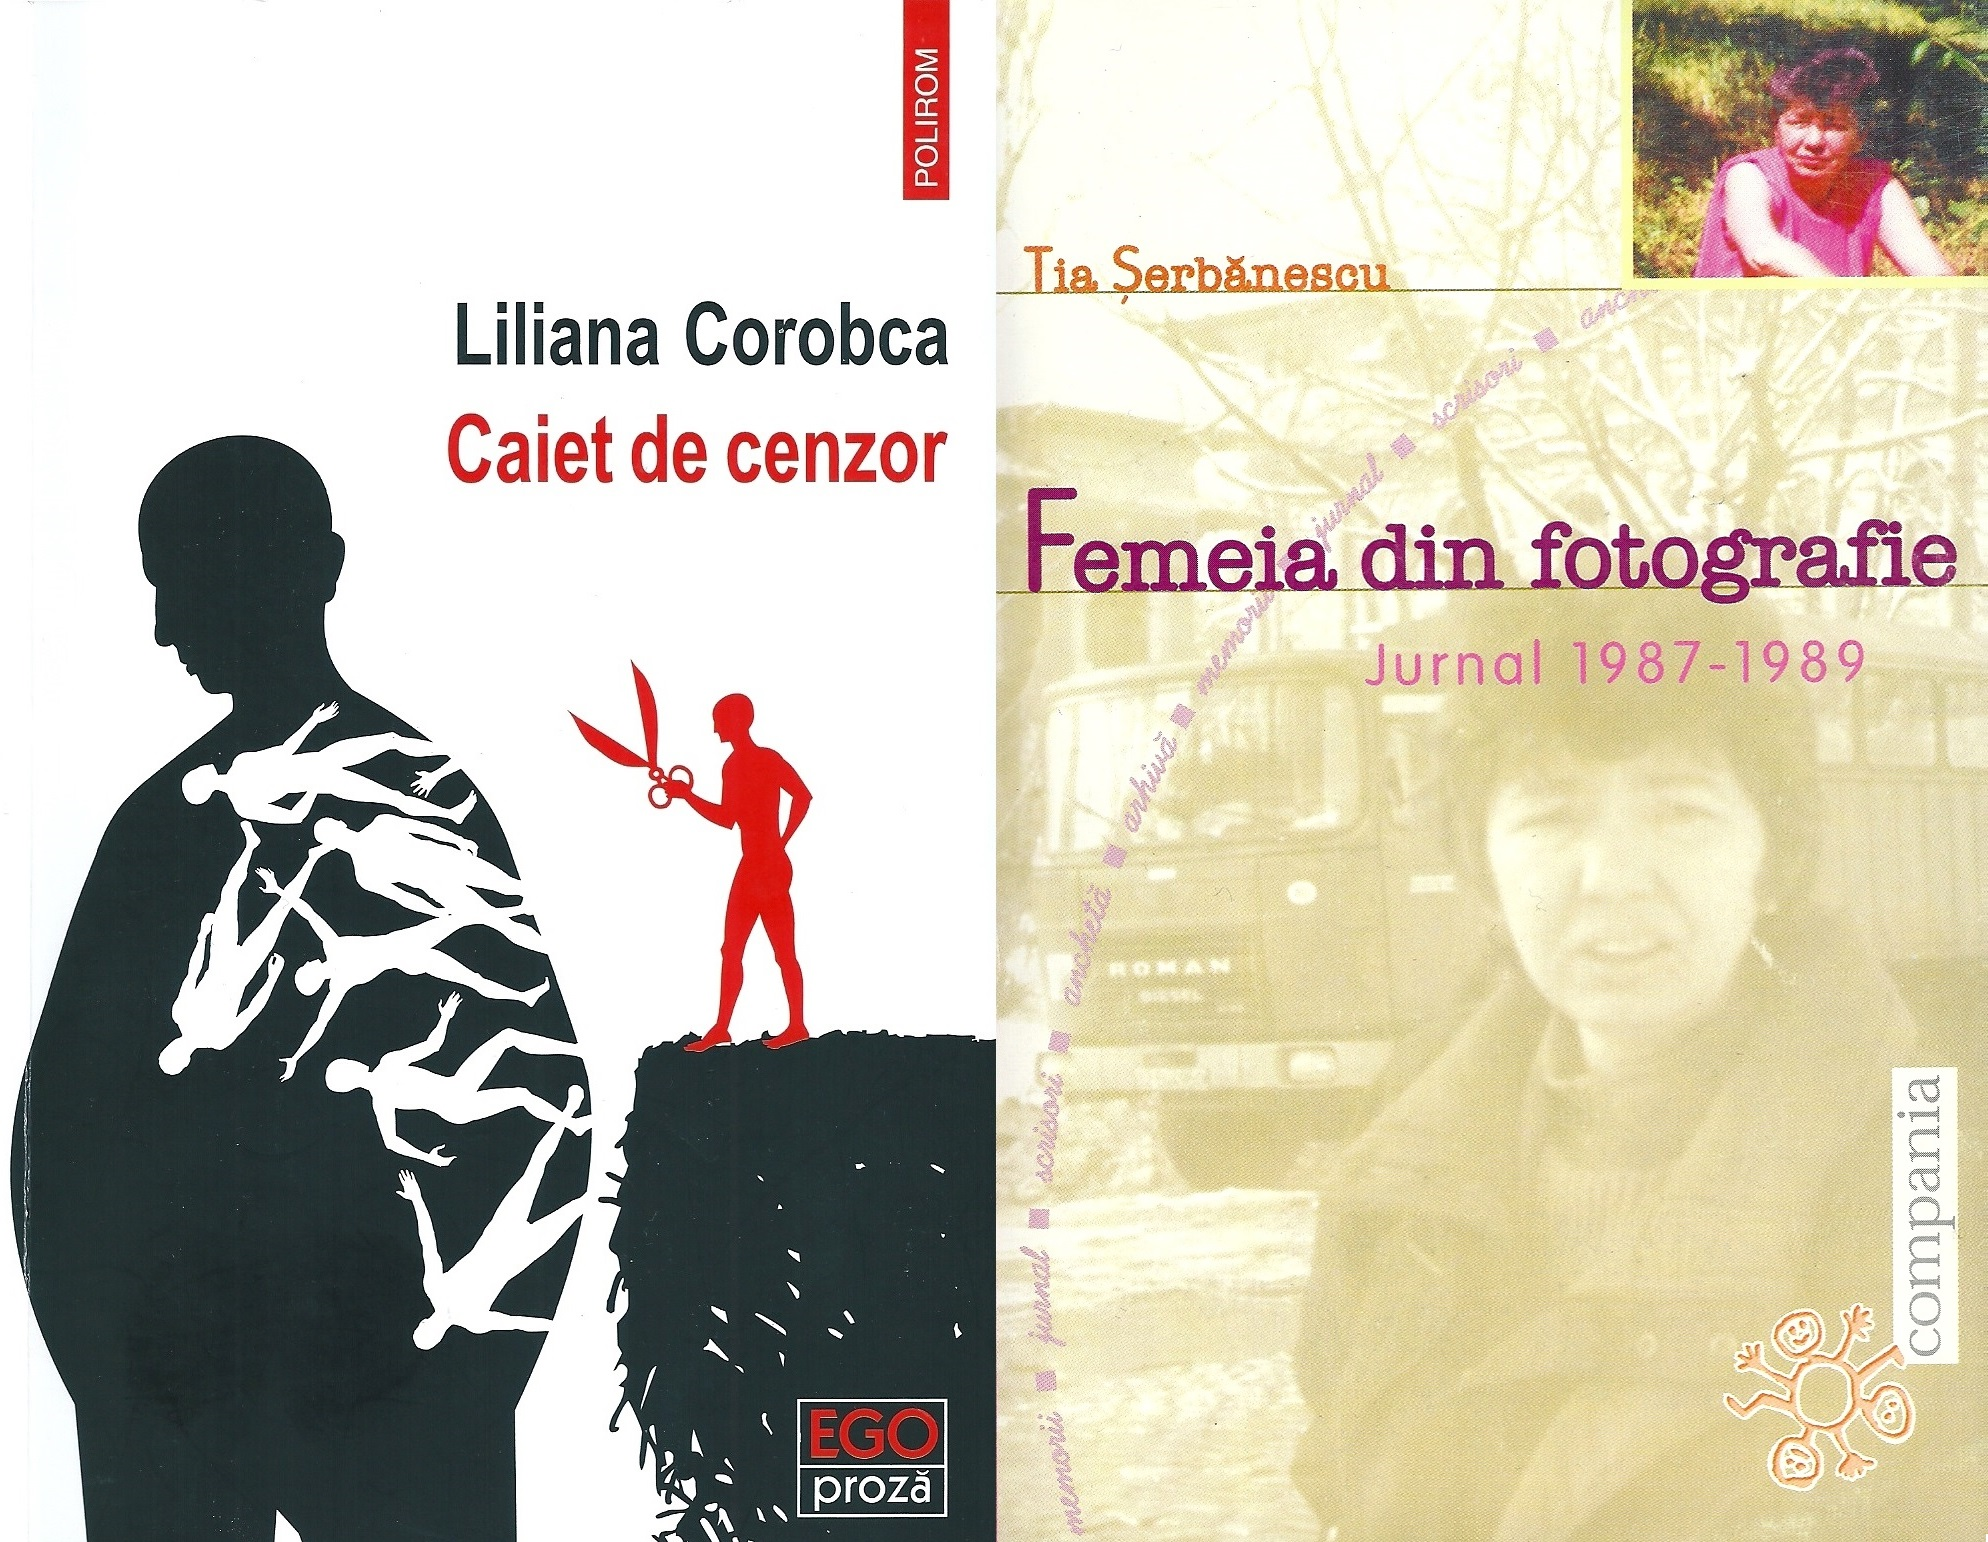 The covers of the two books explored in the article